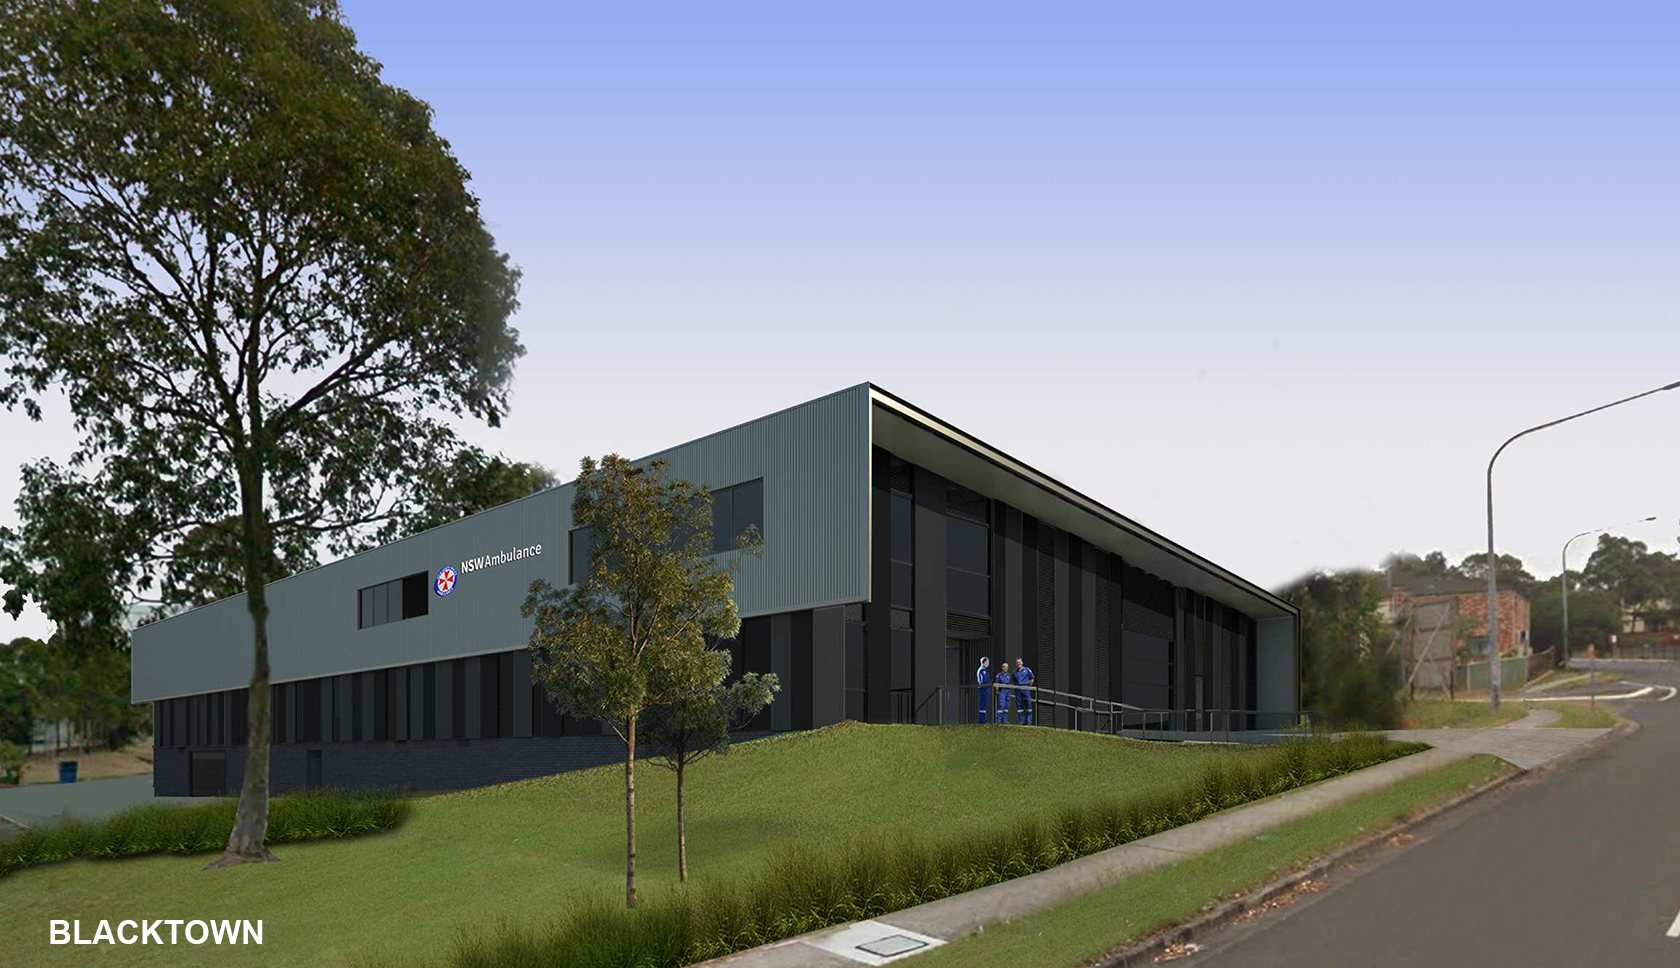 NSW ambulance supercentre drawing of the Backtown site